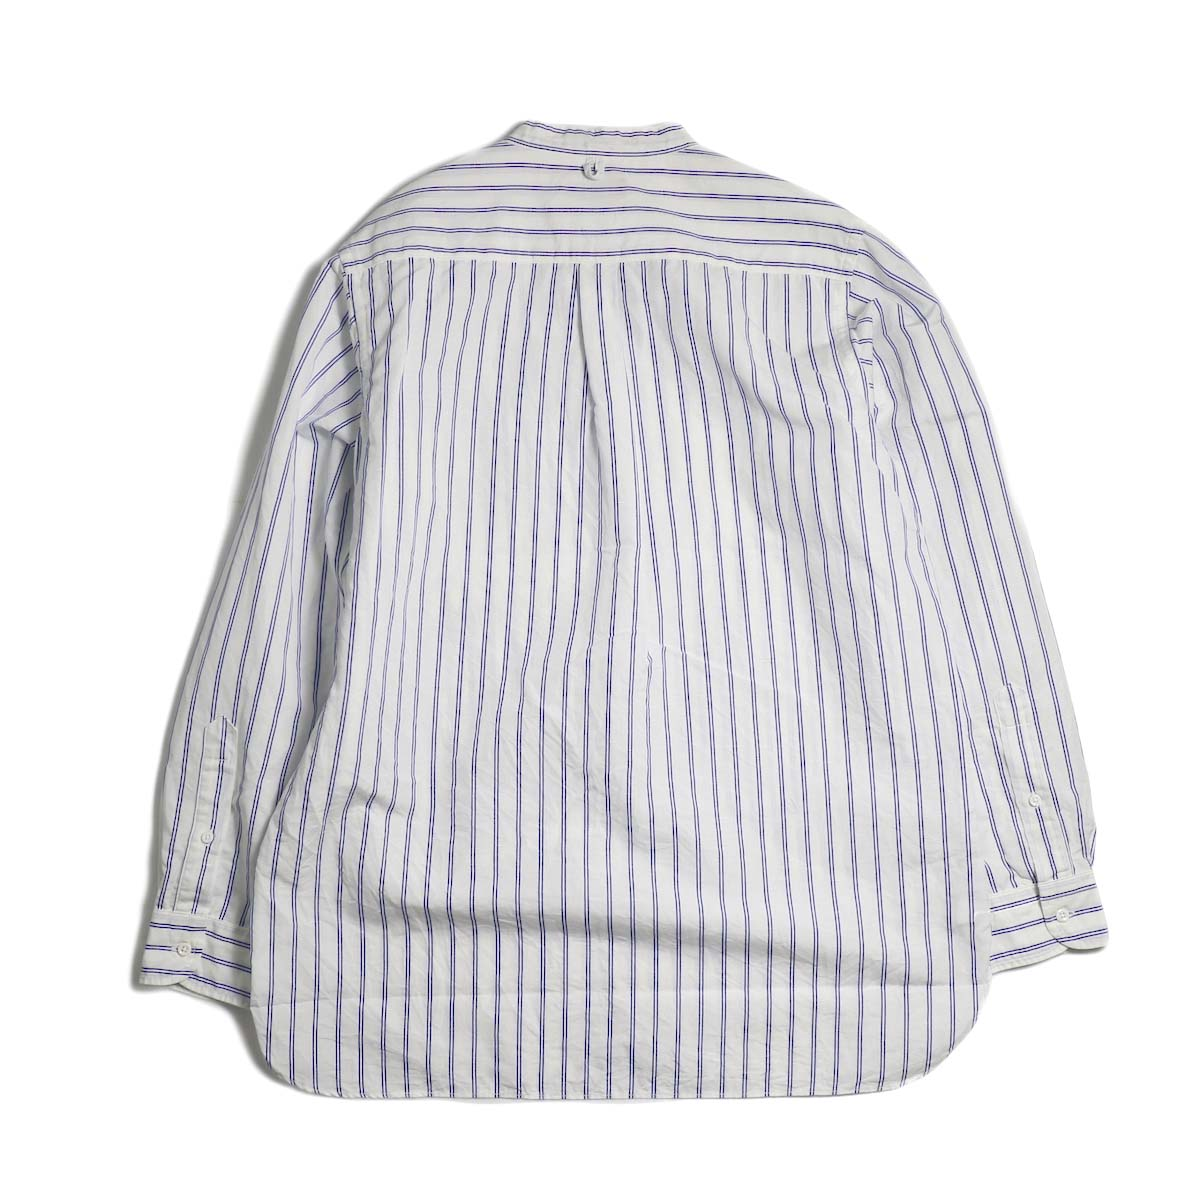 A VONTADE / Banded Collar Shirts -Blue Stripe 背面